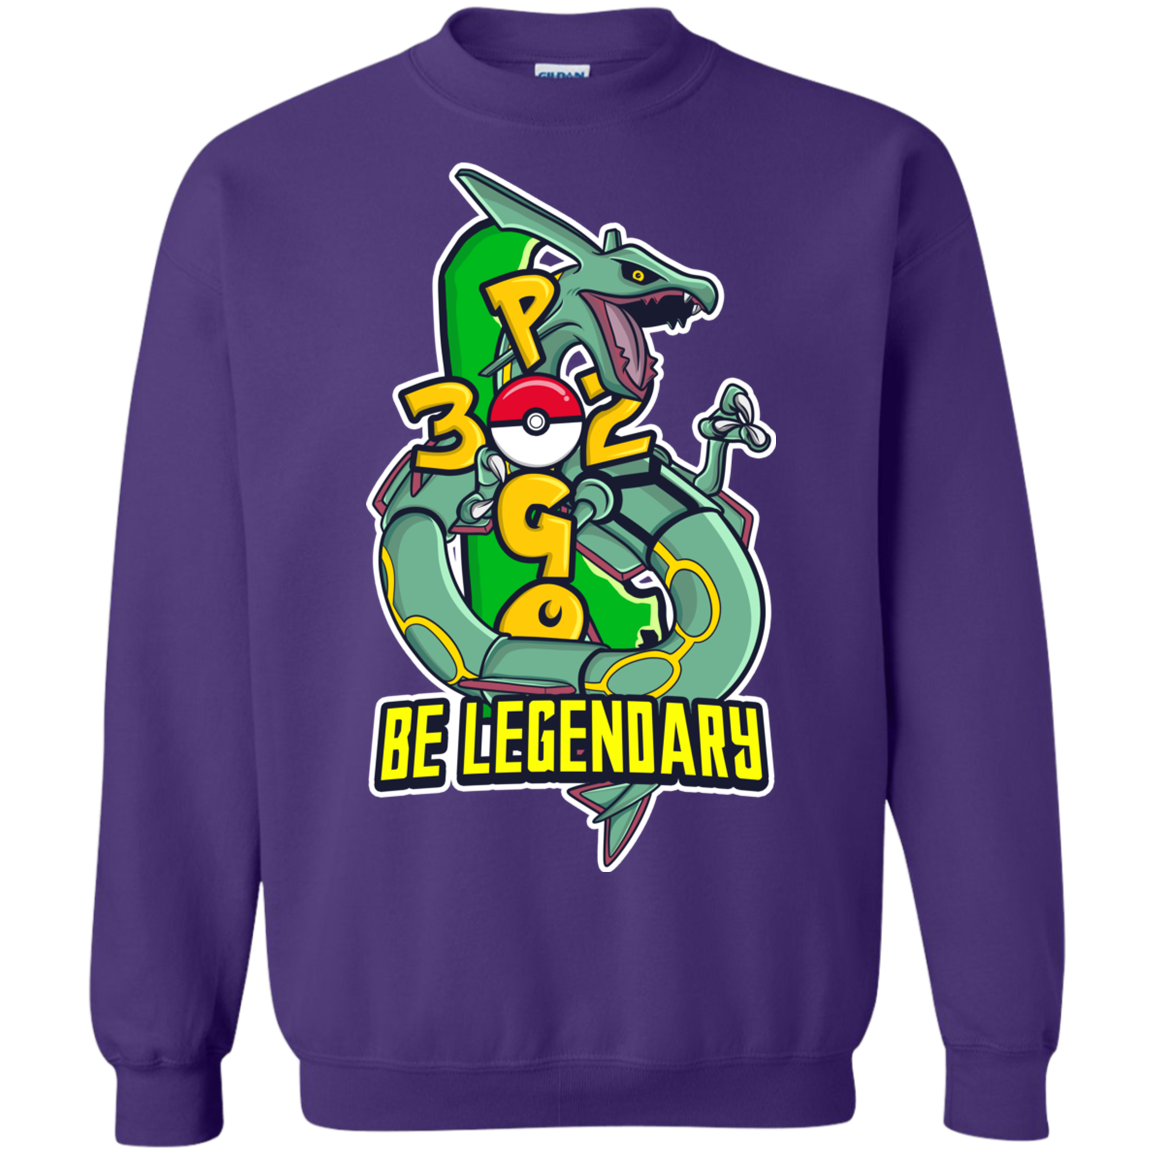 BE LEGENDARY Crewneck Pullover Sweatshirt  8 oz.